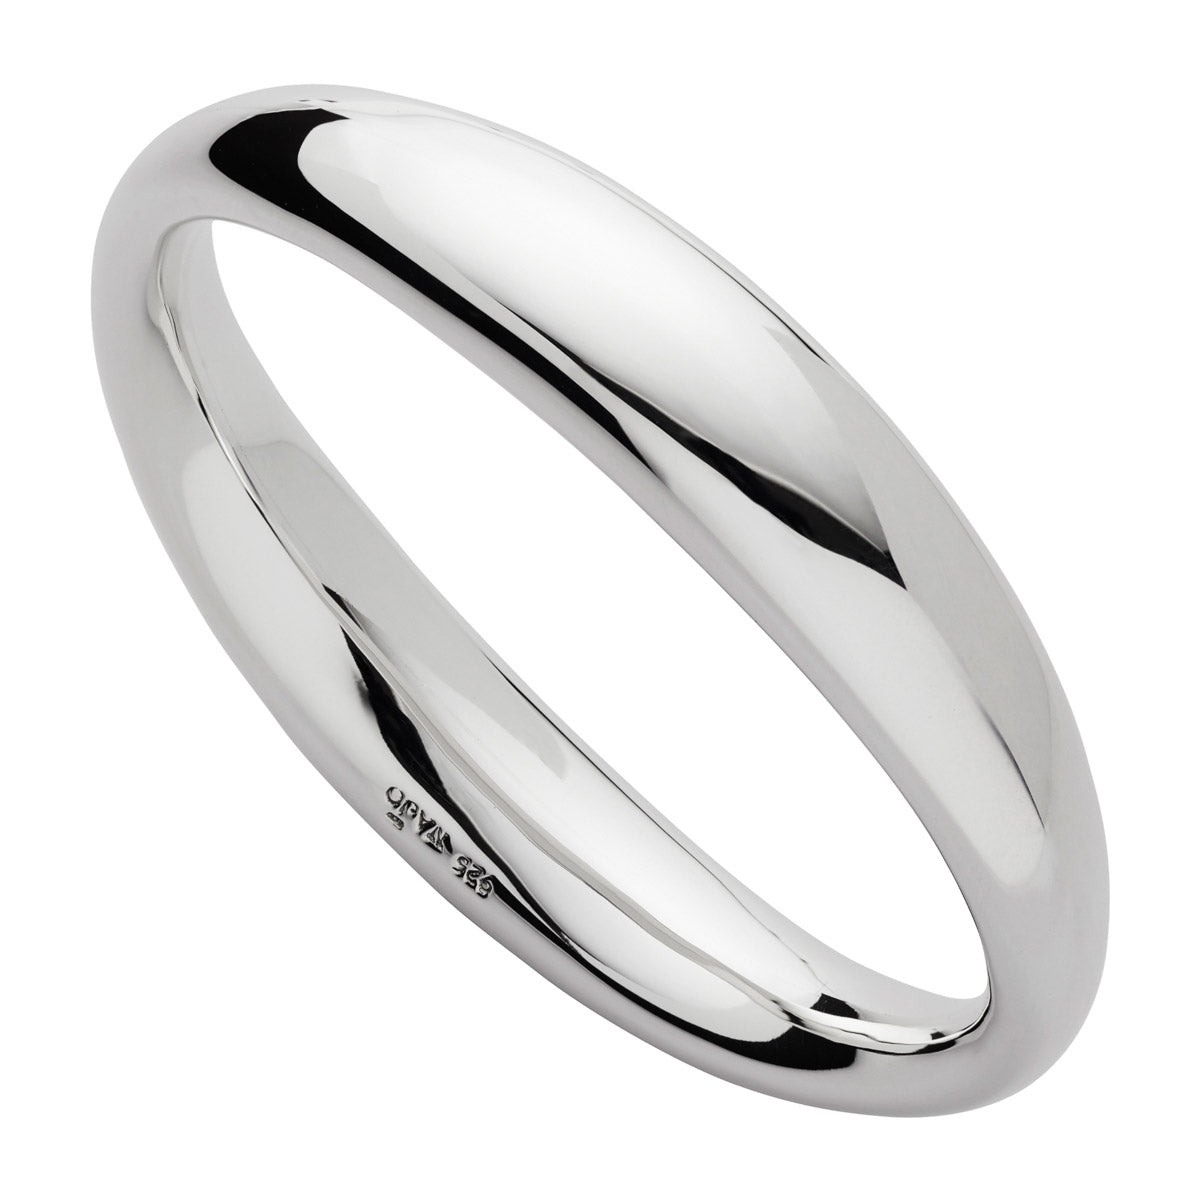 Naj 'O' Bangle (63mm)